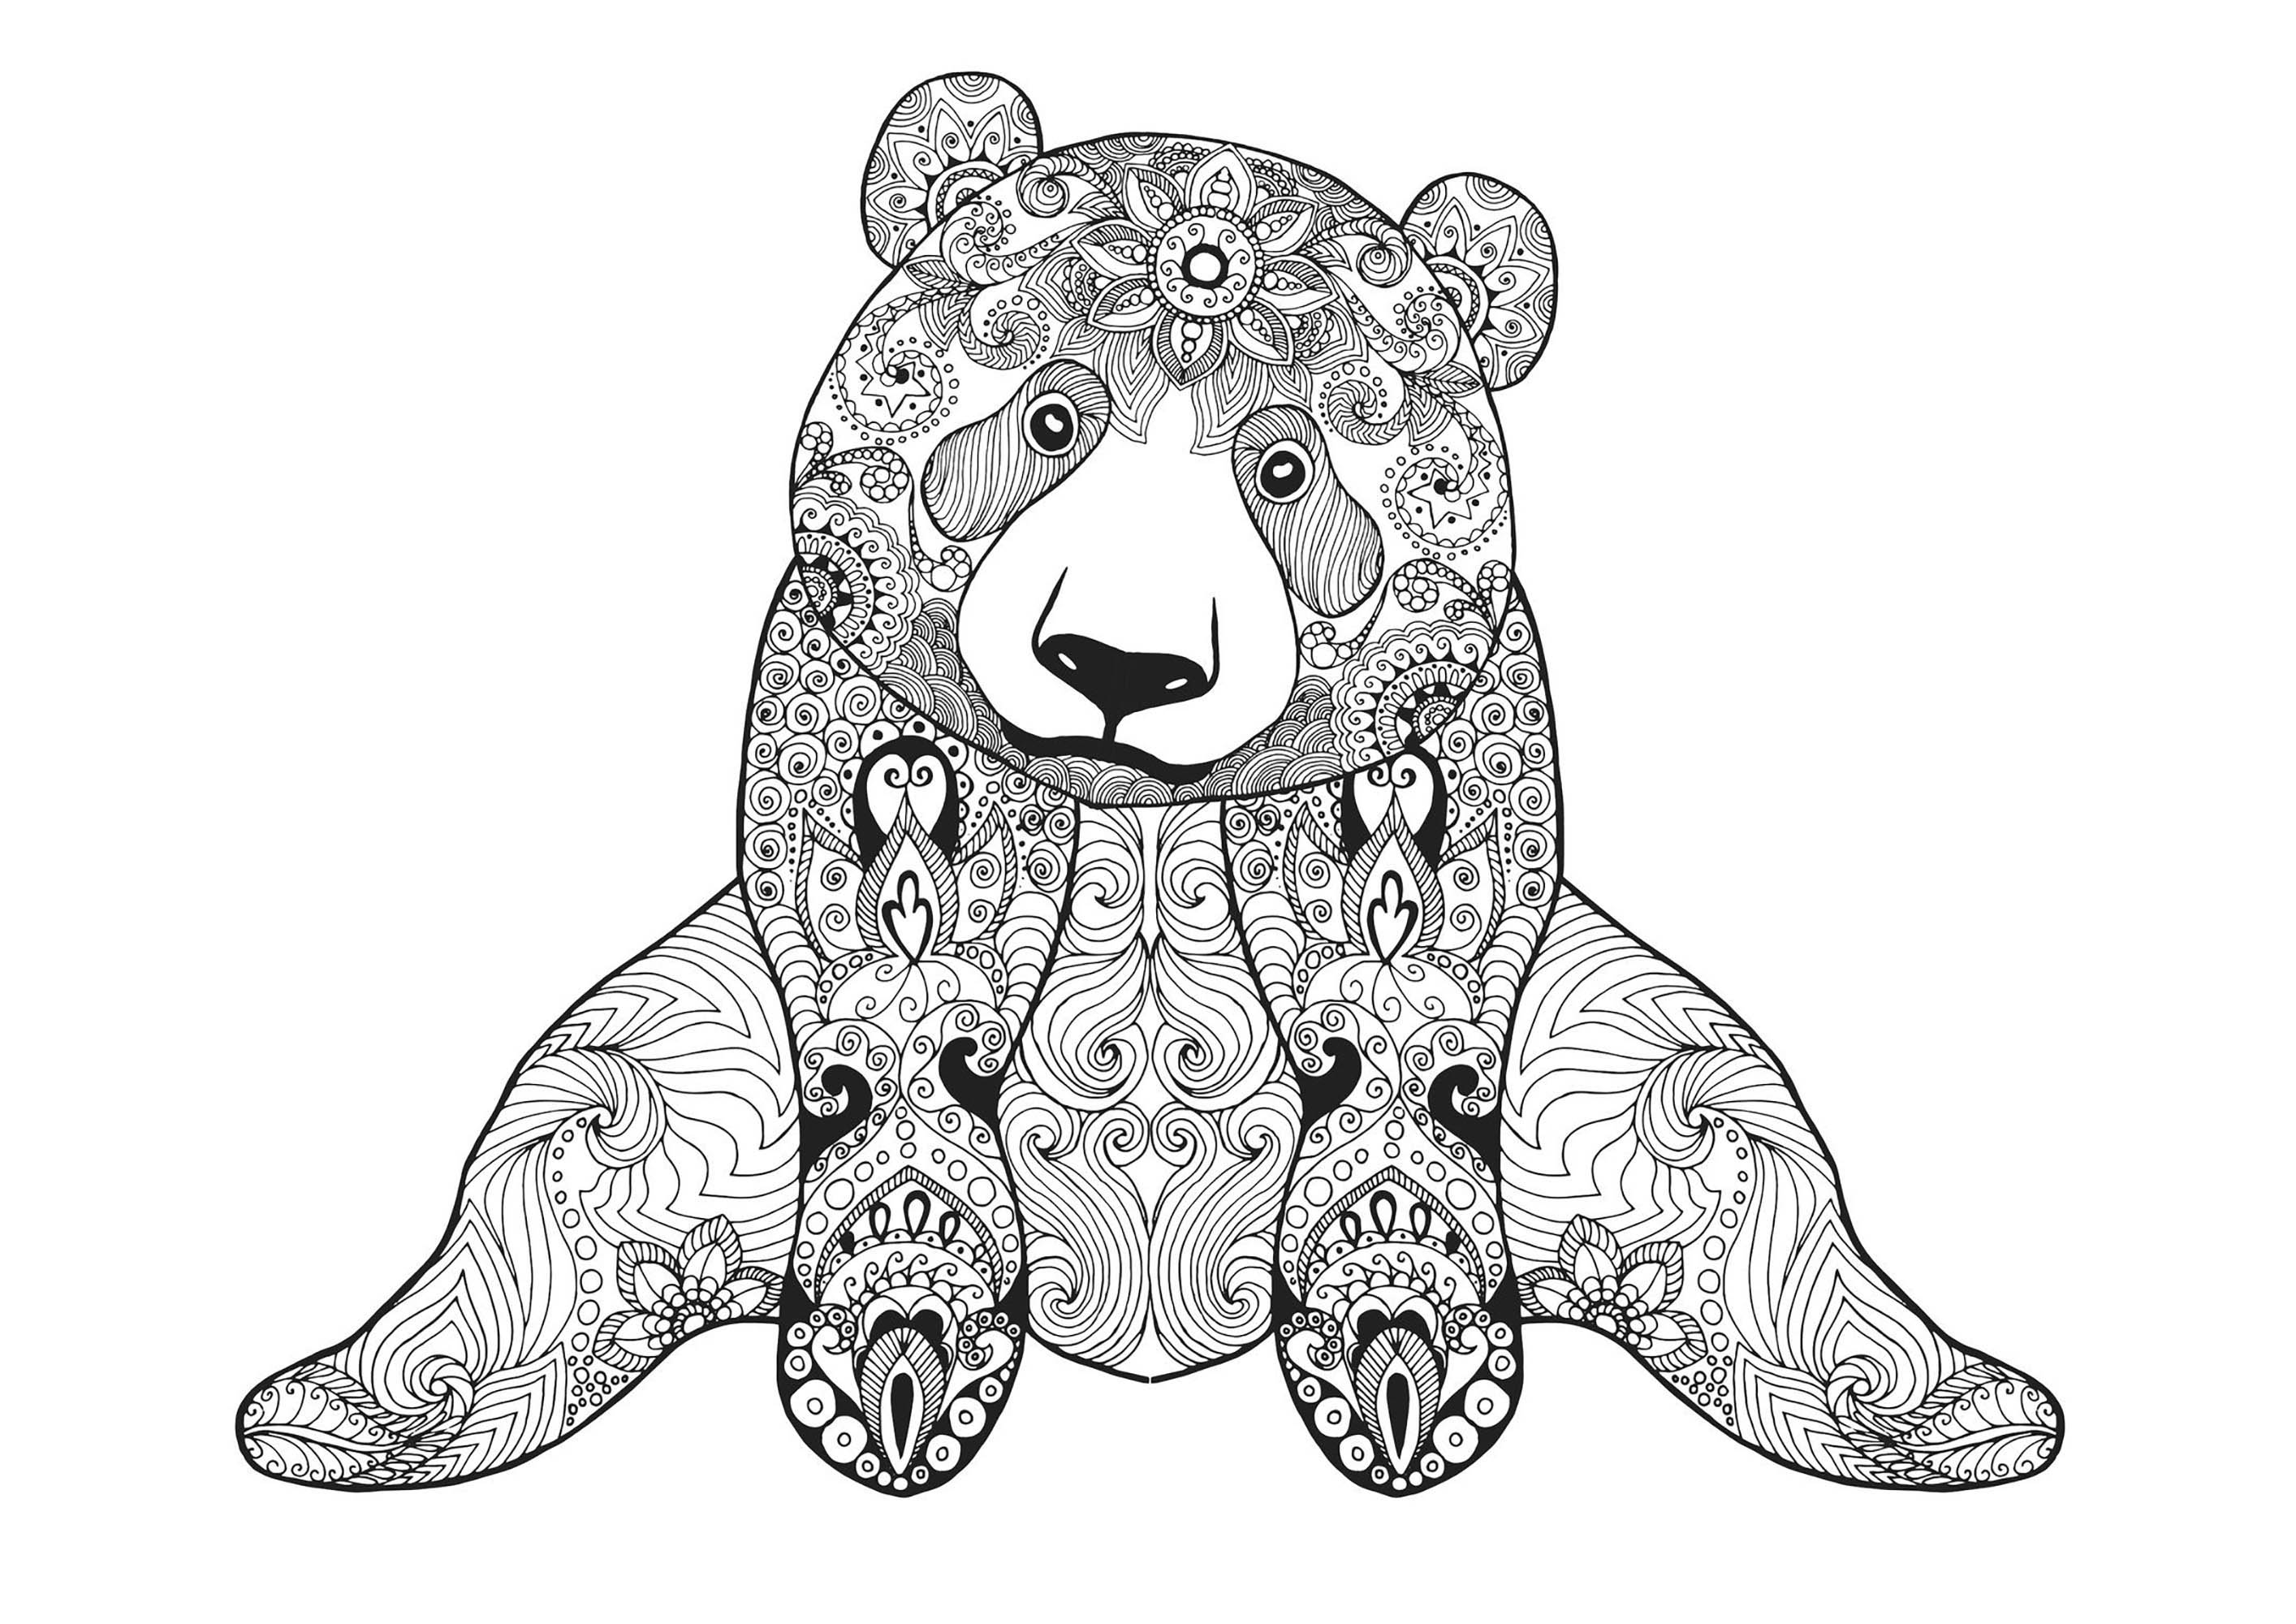 www coloring sheets sitting bear bears adult coloring pages coloring www sheets